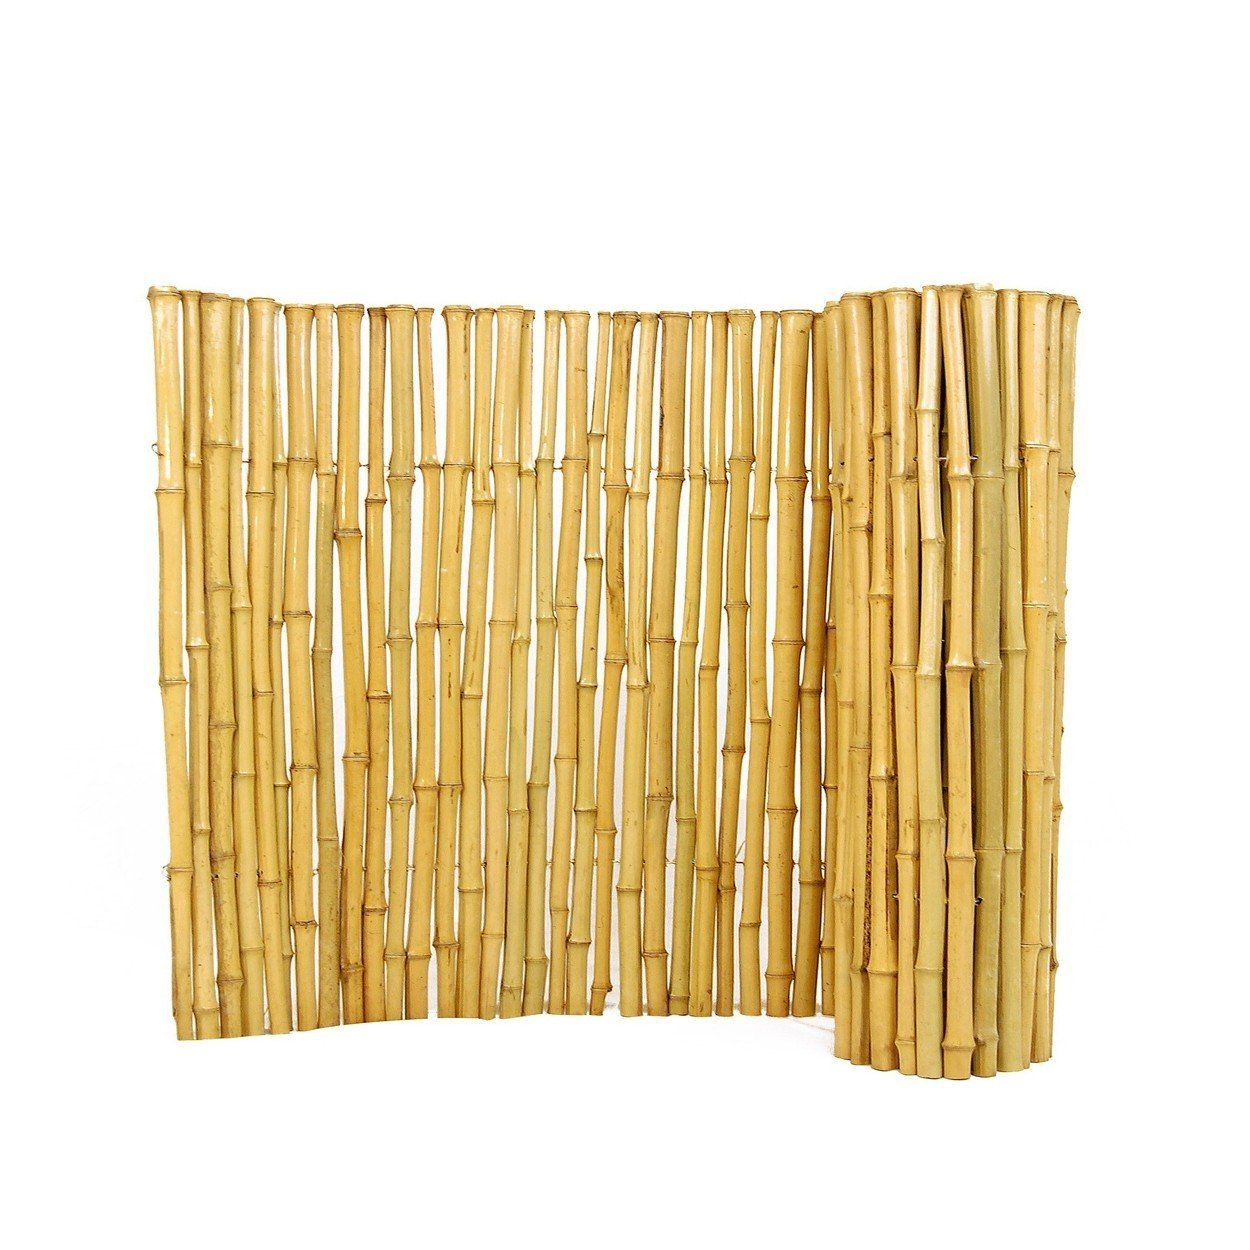 Eco Friendly Natural Bamboo Fencing 1 X 2 X 8 In 2020 Bamboo Fence Bamboo Garden Fences Fence